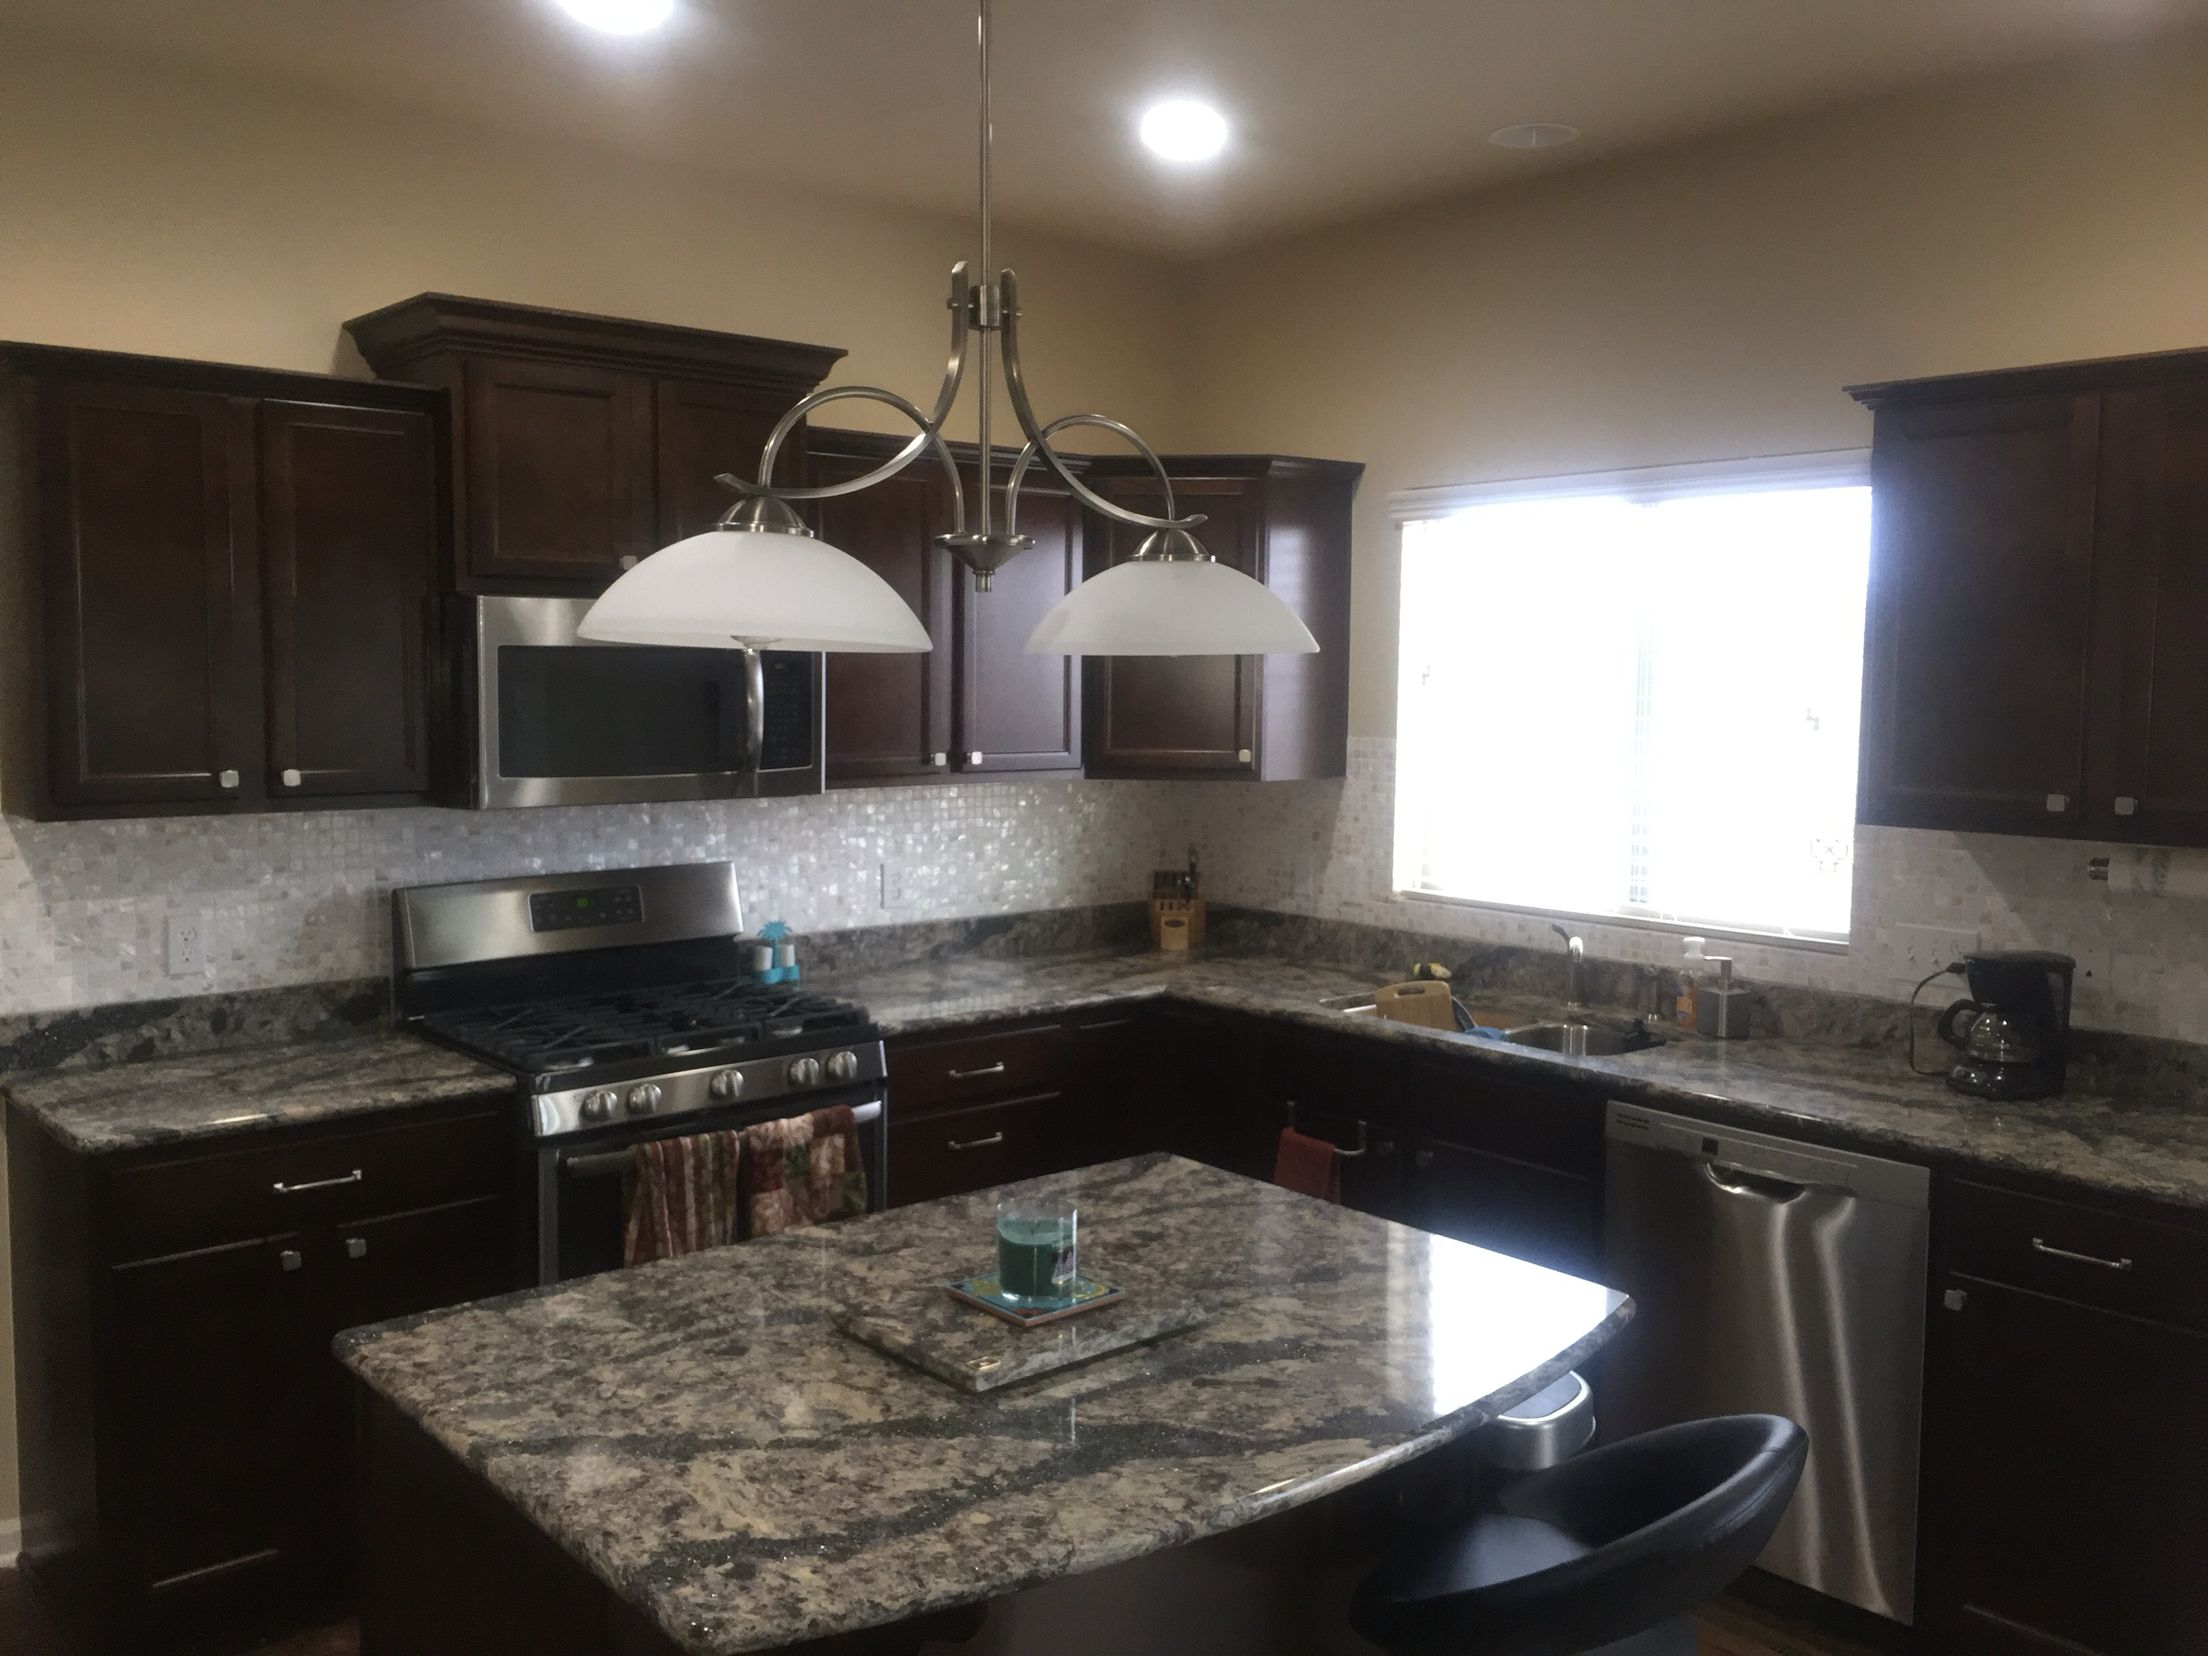 Kitchen Cabinets And Countertops Lowes Tile Modern Dark Quartz